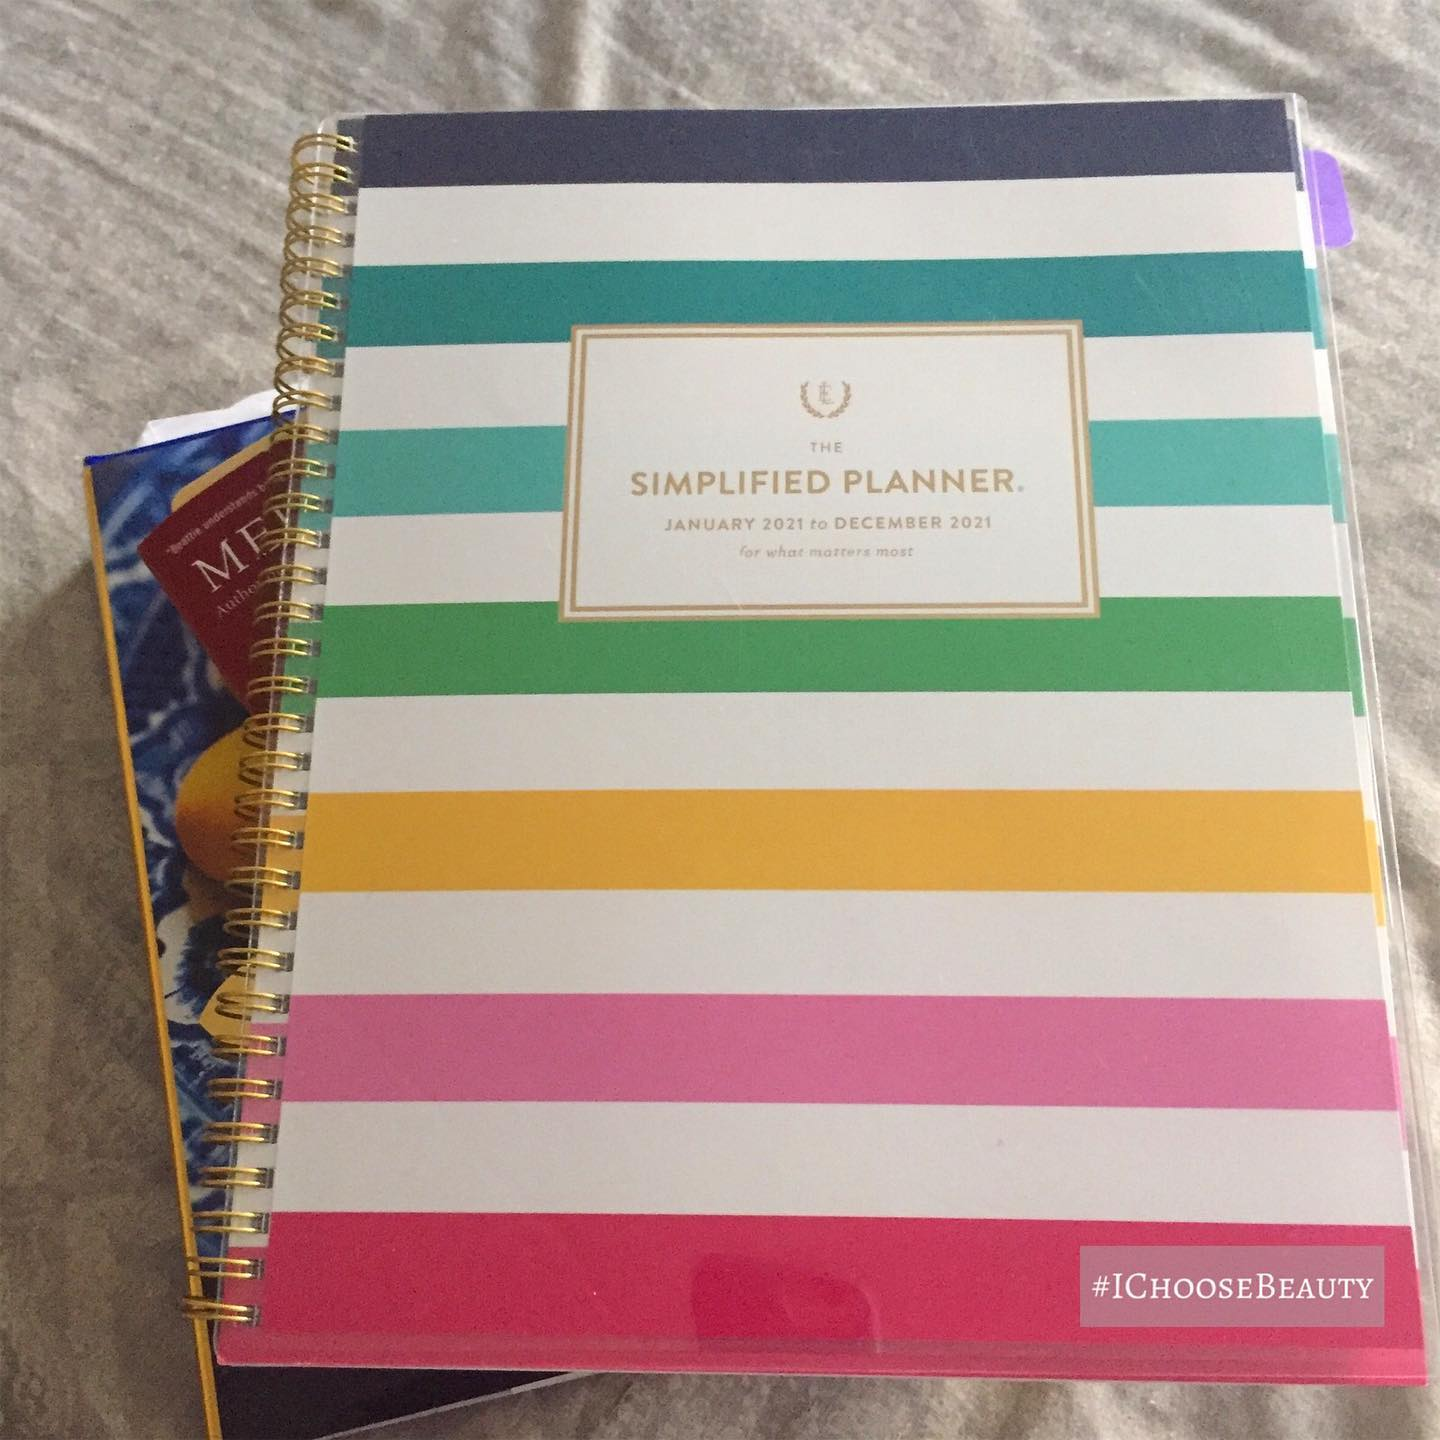 Trying to plan the next week, but I really wish I could just sleep for 10 days and have someone wake me when this political mess is over.  Brightly colored planners help a little. #ichoosebeauty Day 2608